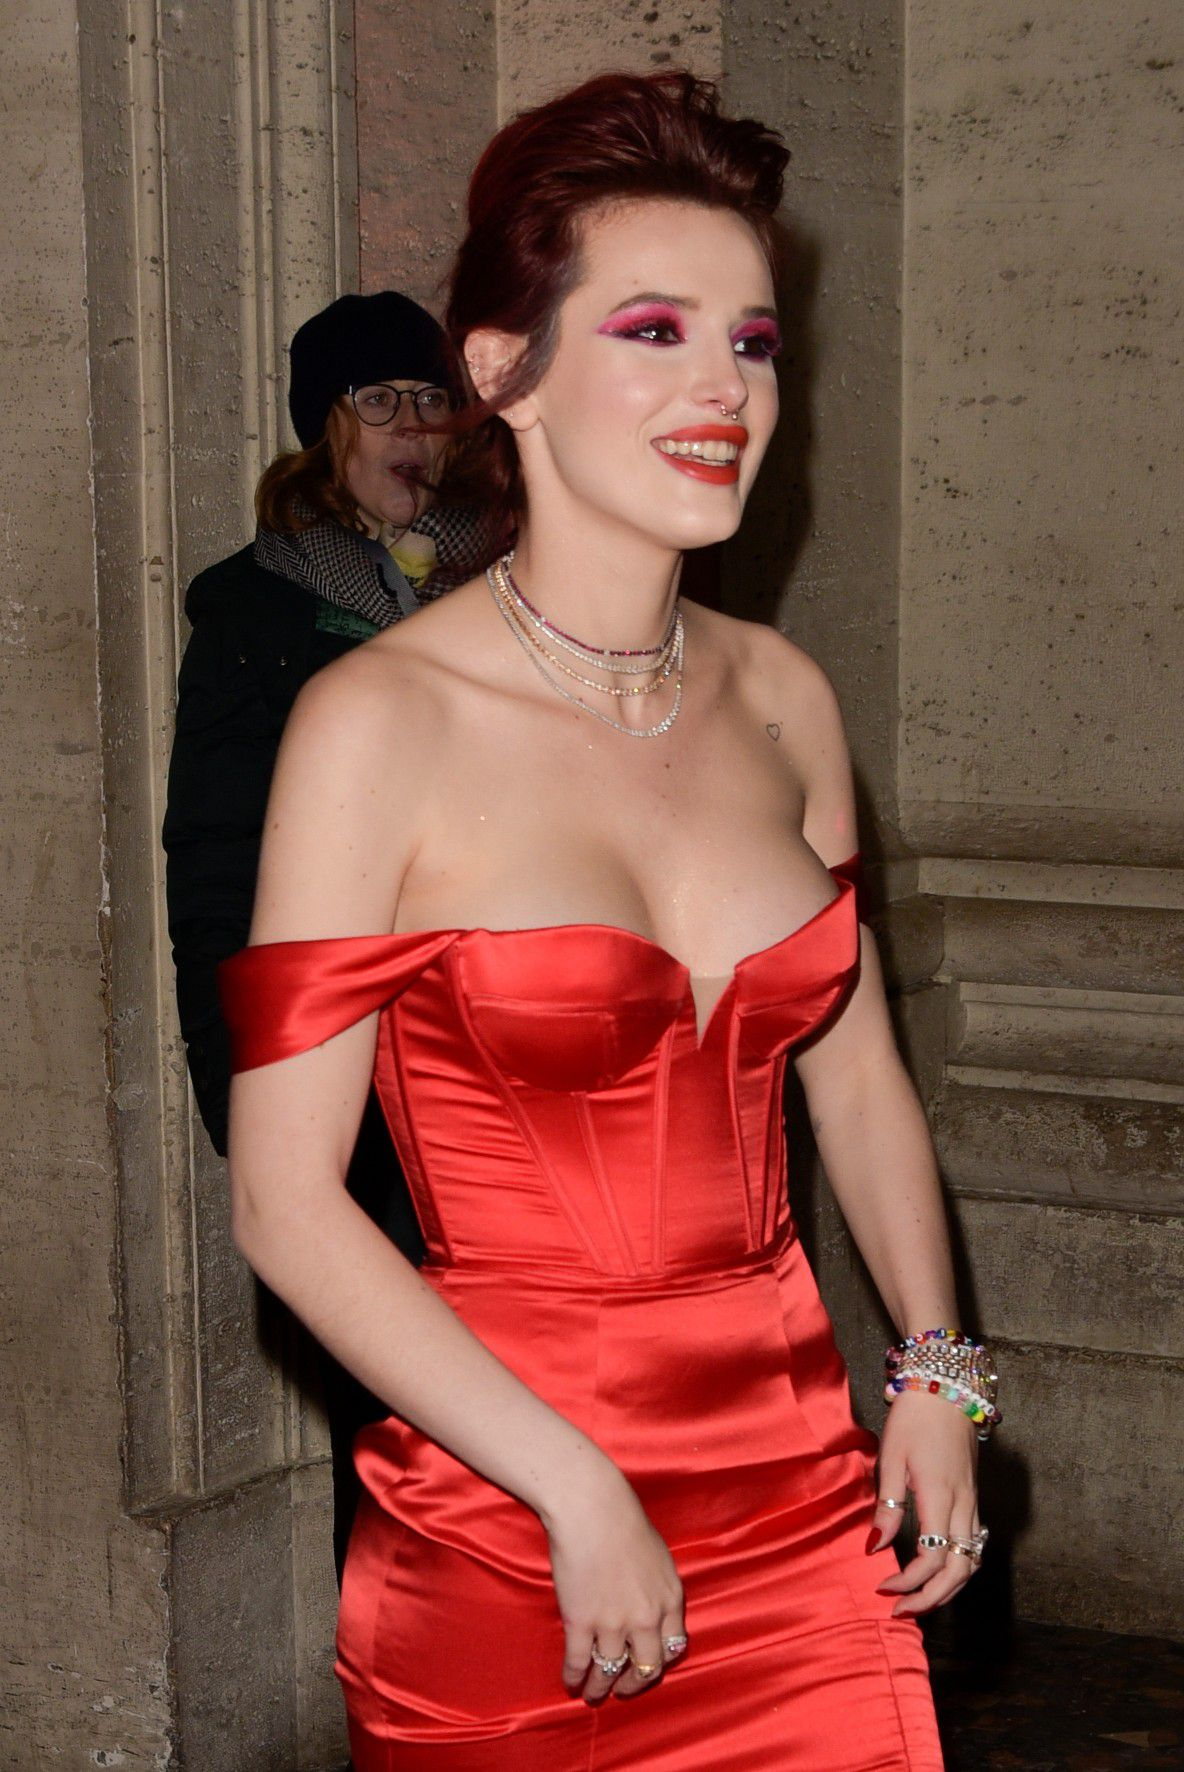 bella-thorne-deep-cleavage-at-midnight-run-premiere-in-rome-2209